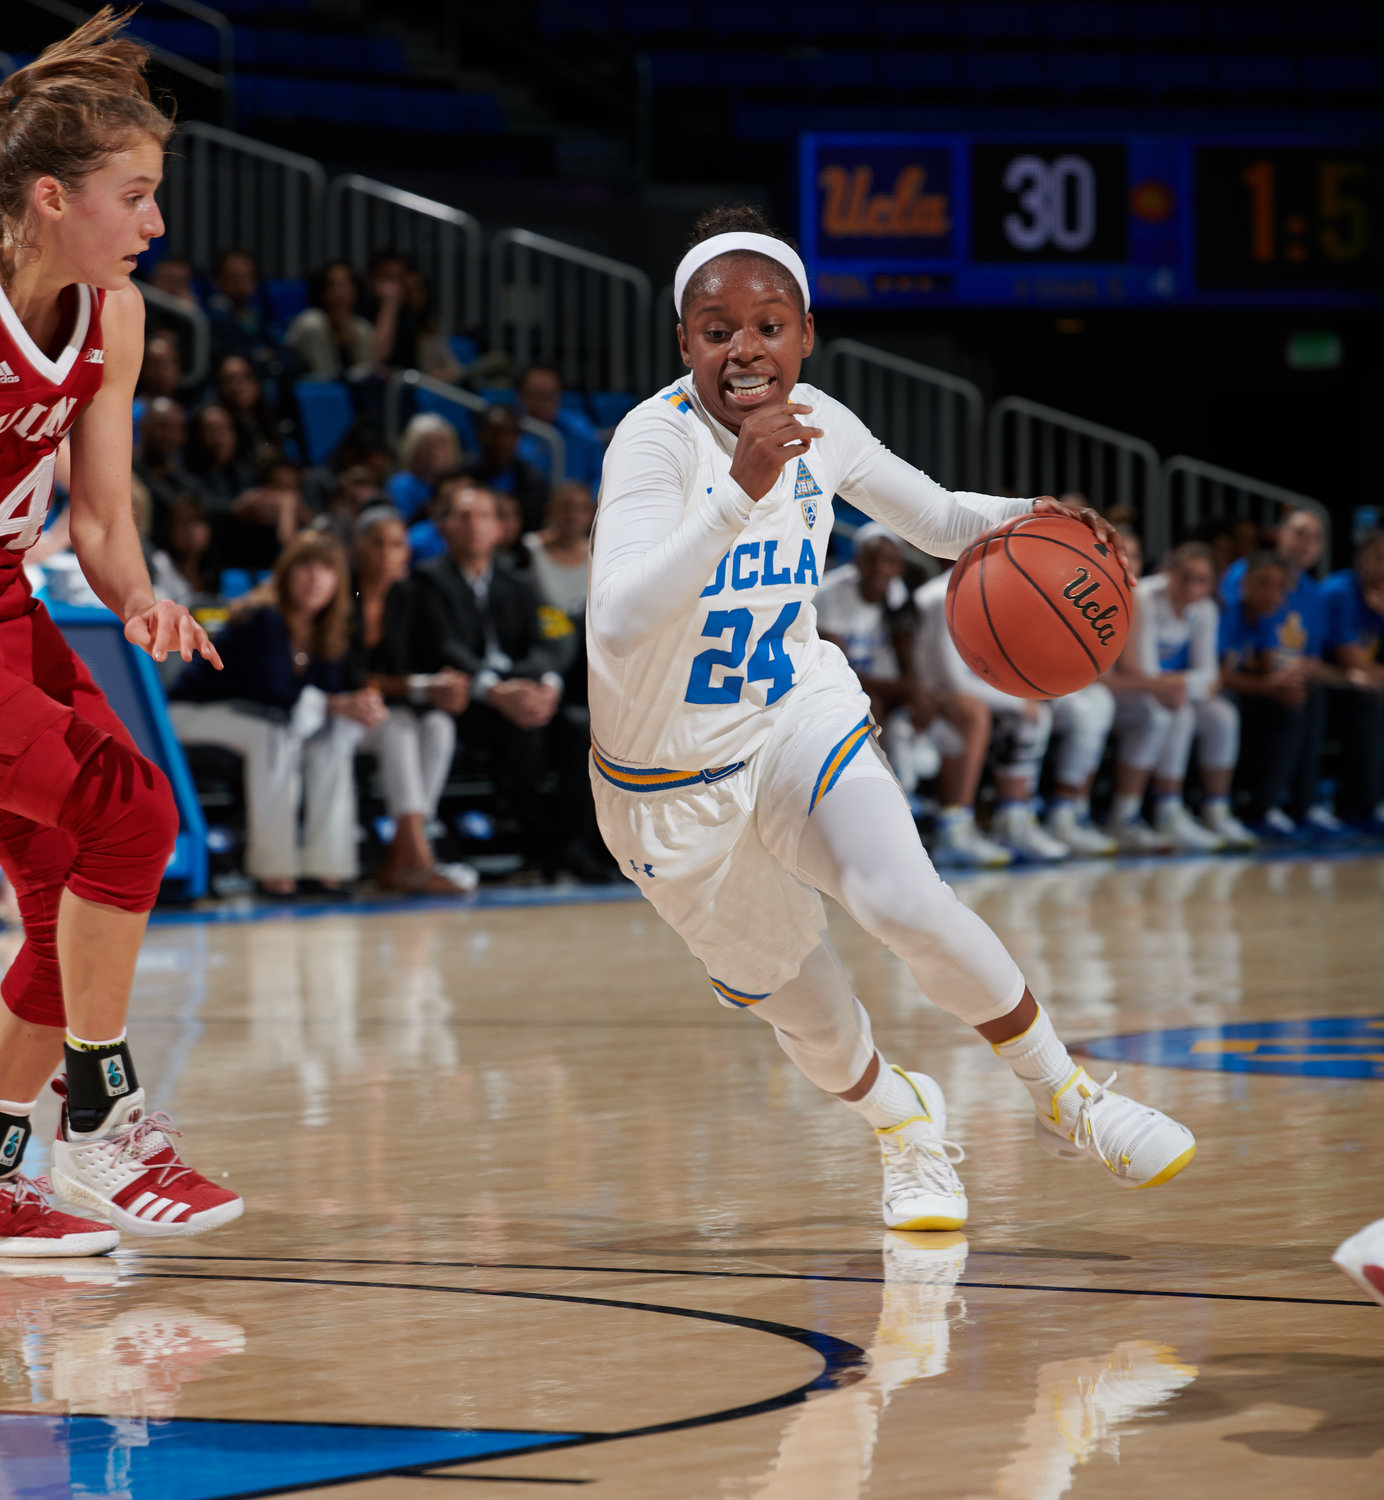 Japreece Dean missed the first nine games last year due to NCAA transfer rules and came off the bench in all but one of the final 26 games. This year, she's started 31 of 32 games and leads UCLA in 3-pointers, assists and minutes played.